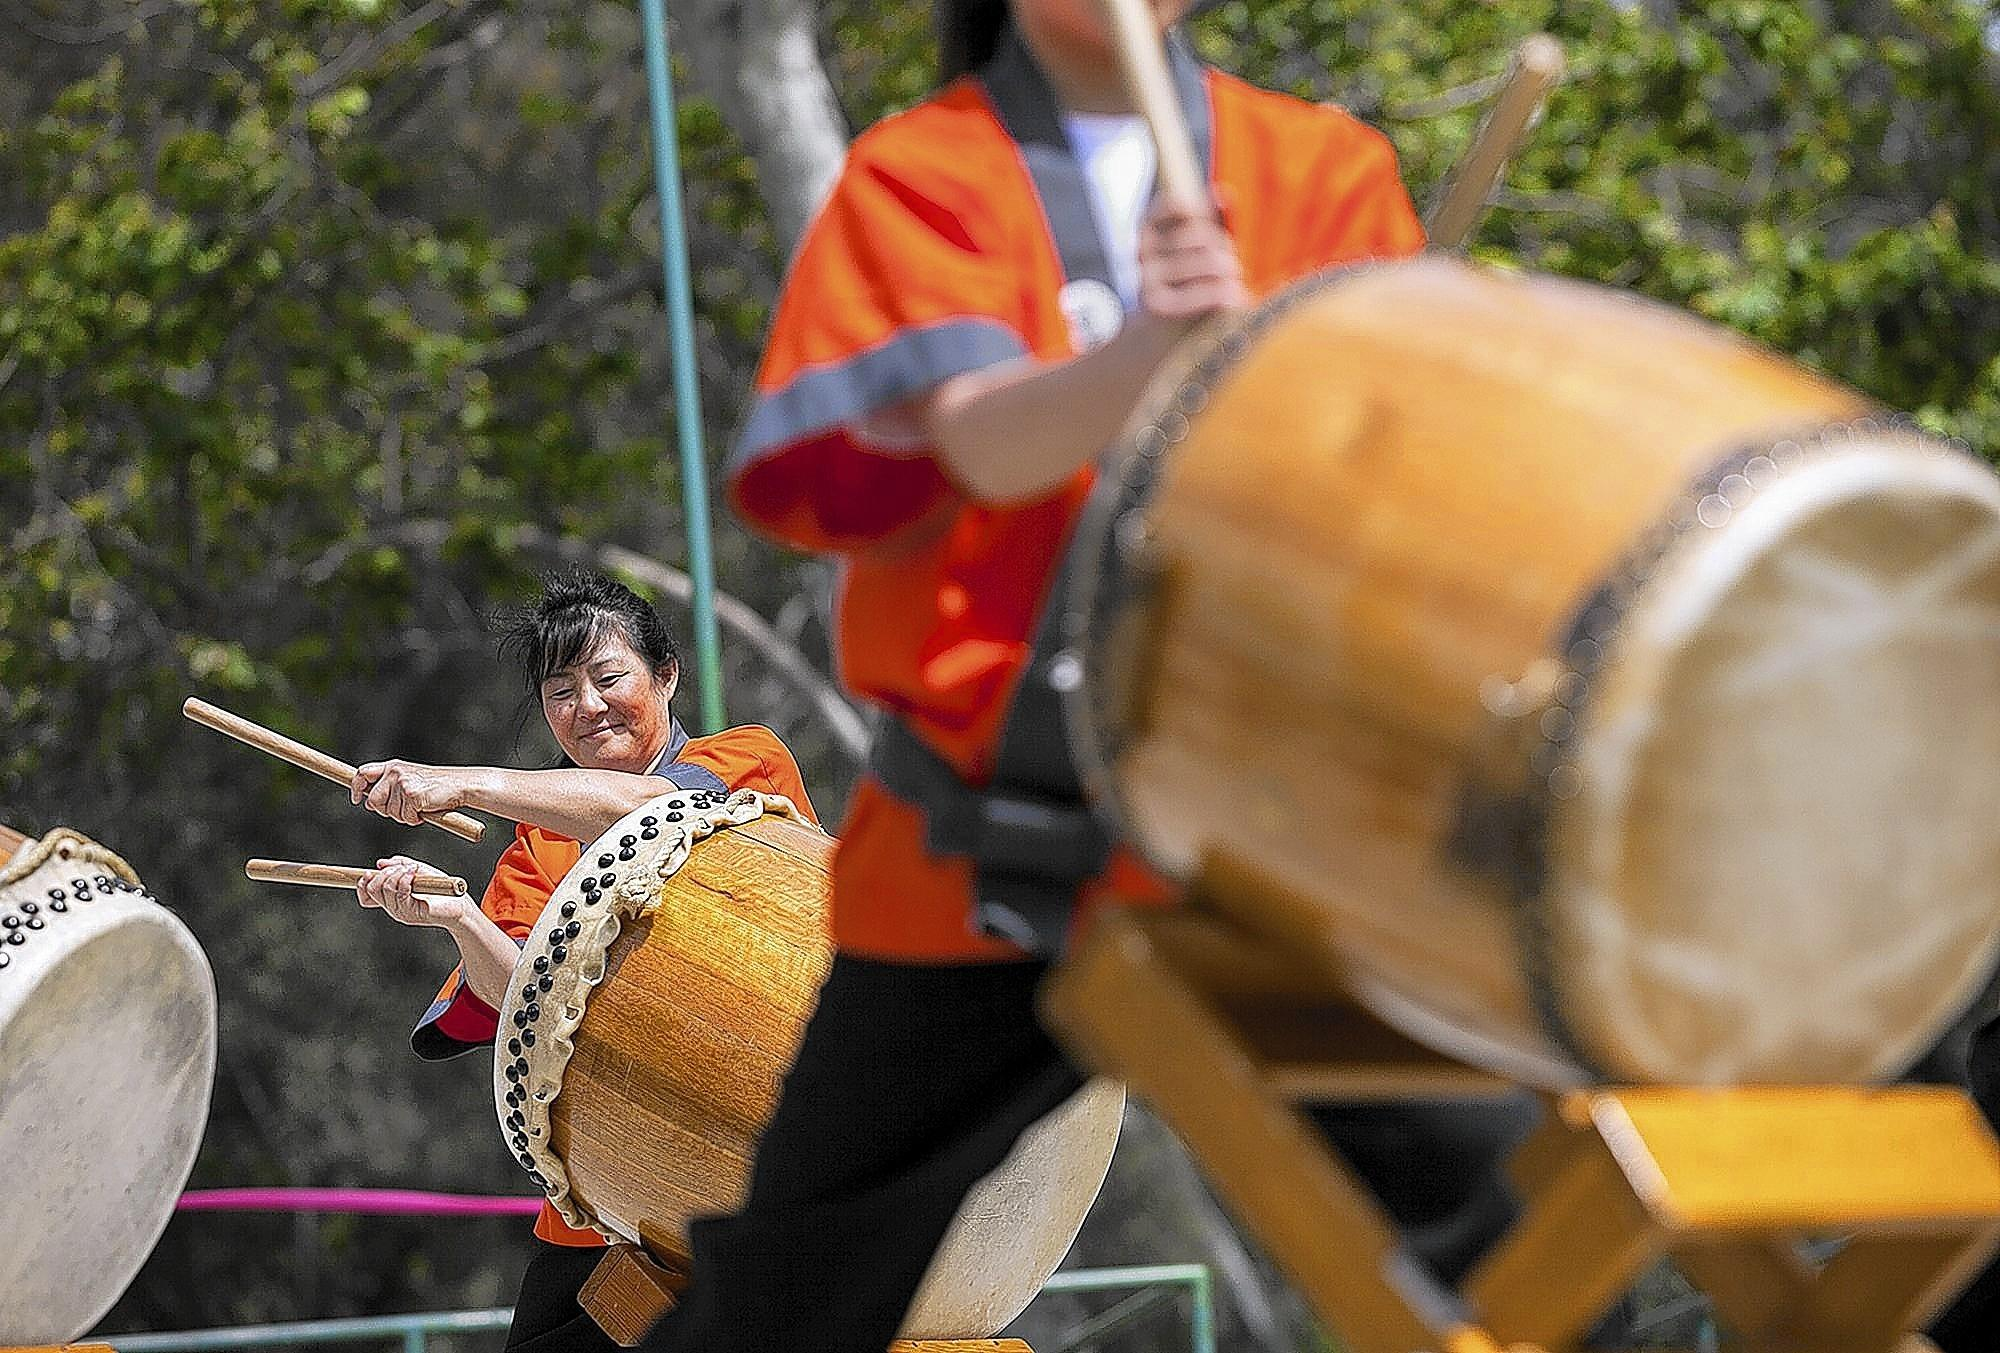 Members of Daion Taiko, from the Orange County Buddhist Church in Anaheim, perform during the Huntington Beach Sister City Japanese Cultural Festival on Saturday in Central Park.